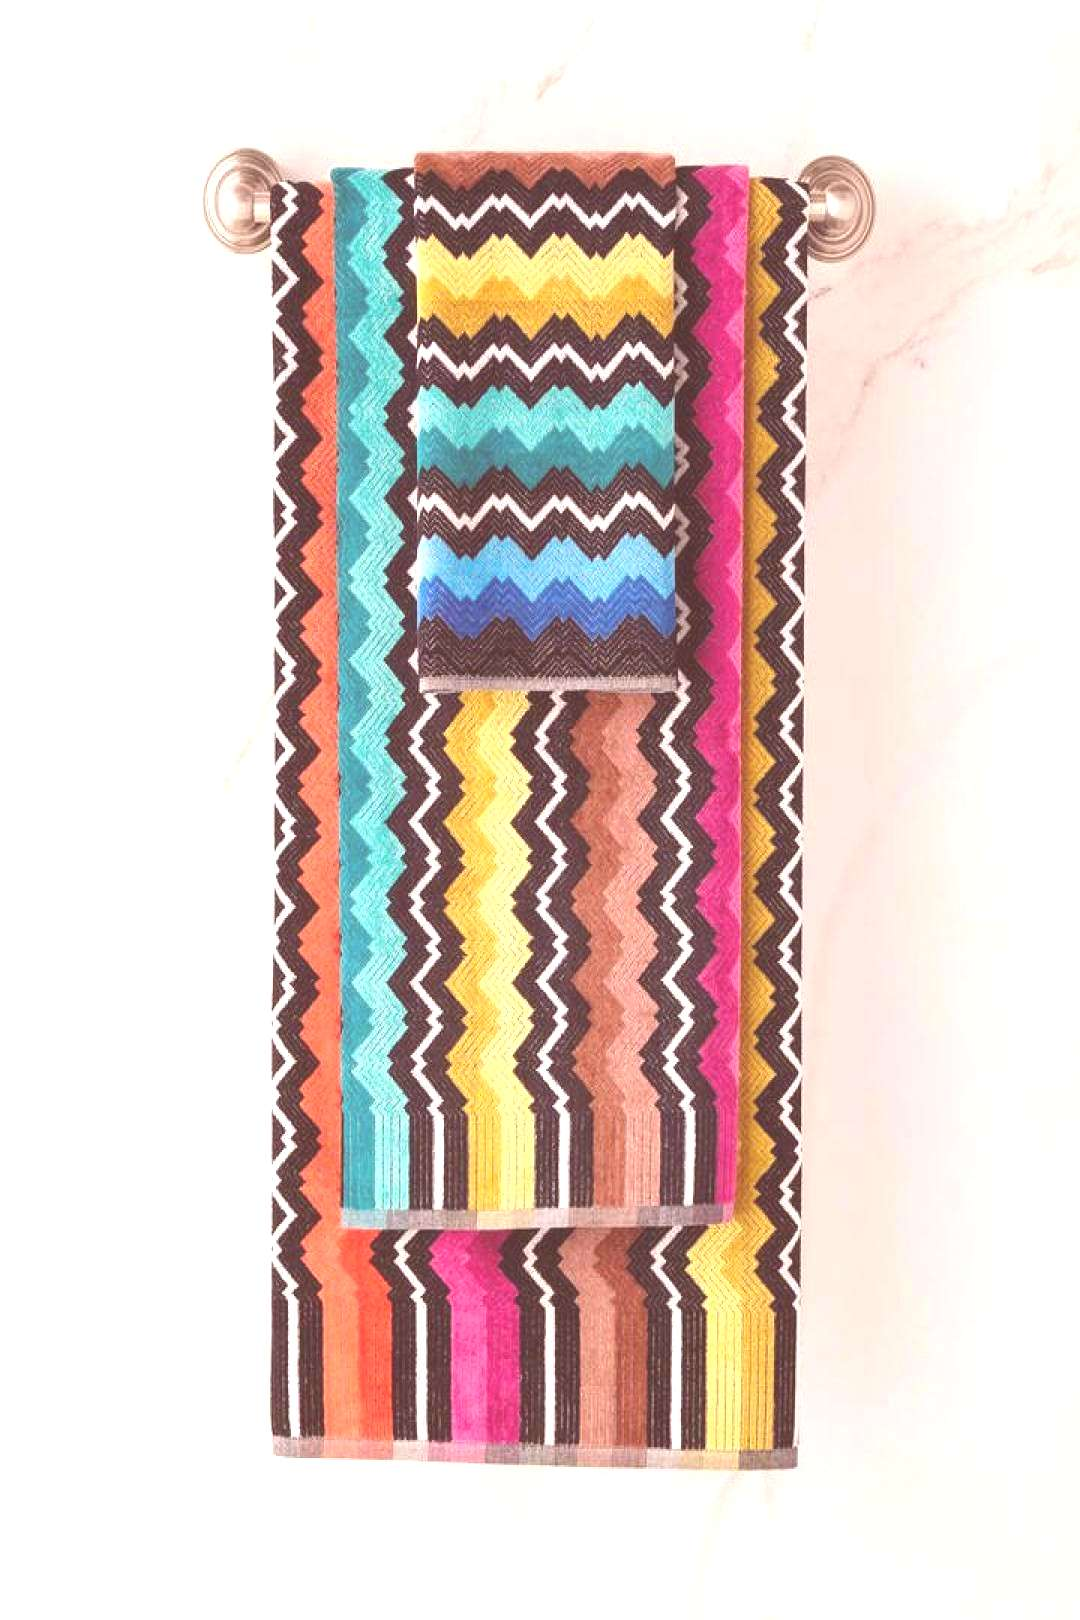 Missoni Home Vasilij 5-Piece Towel Set ,You can find Missoni and more on our website.Missoni Home V